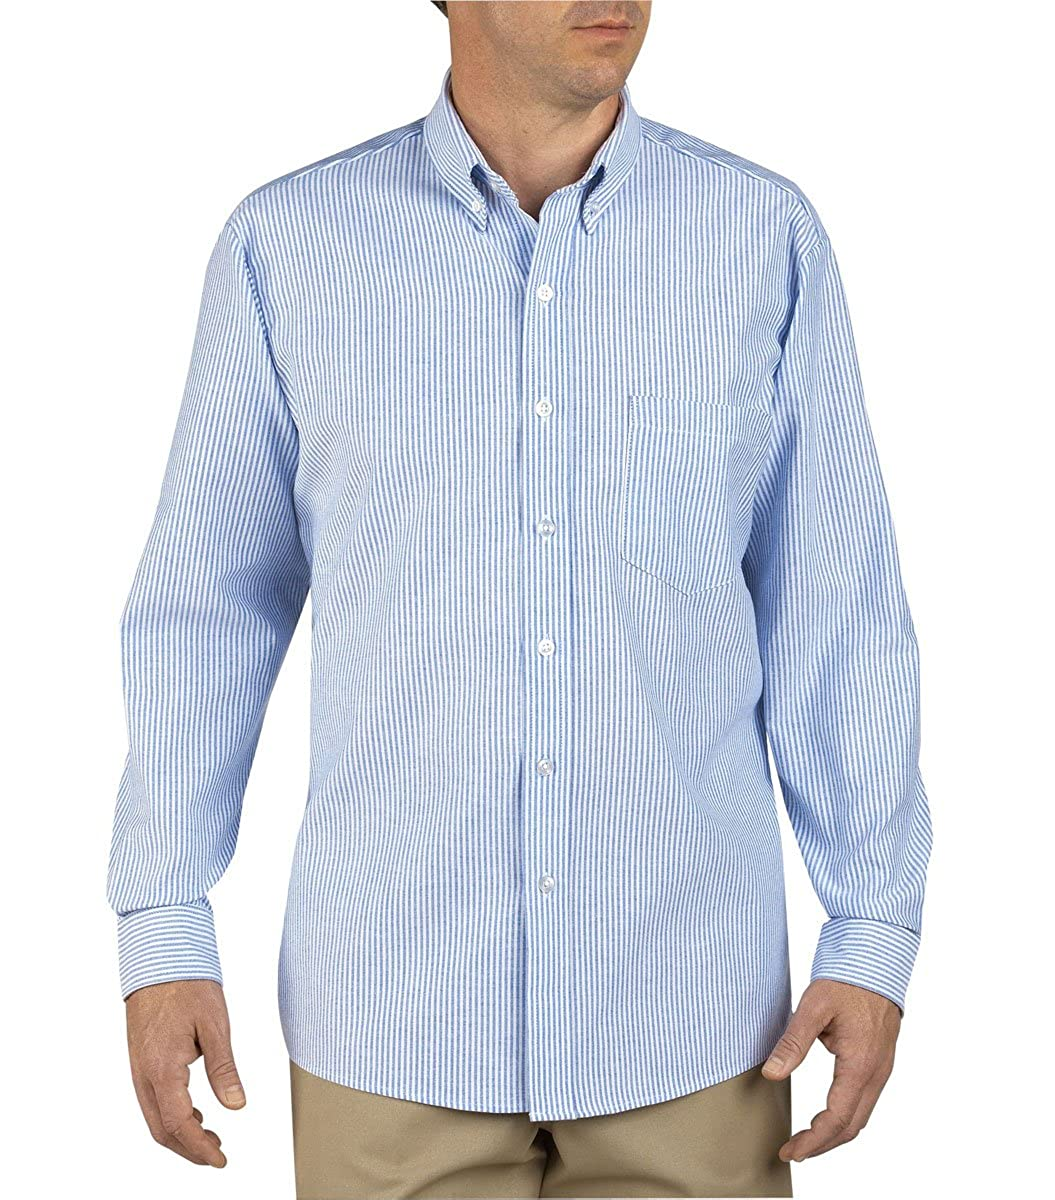 83944655 Dickies Men's Button-Down Long Sleeve Oxford Shirt, White, Blue Stripe, Long  at Amazon Men's Clothing store: